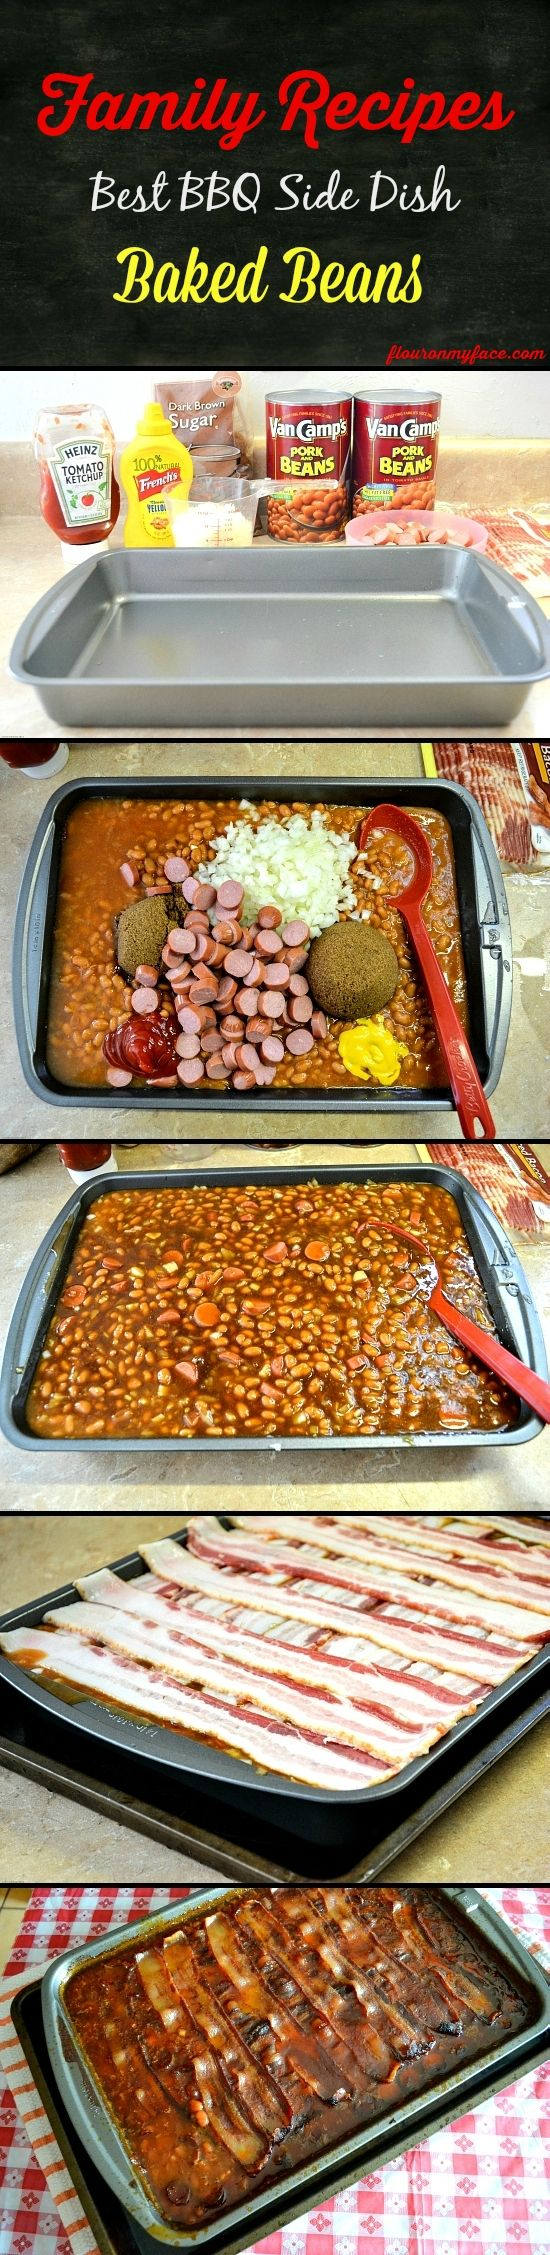 Best Baked Bean Recipe Ever ~ A family favorite that will feed a crowd or just a family. The next day they tastes just as yummy!